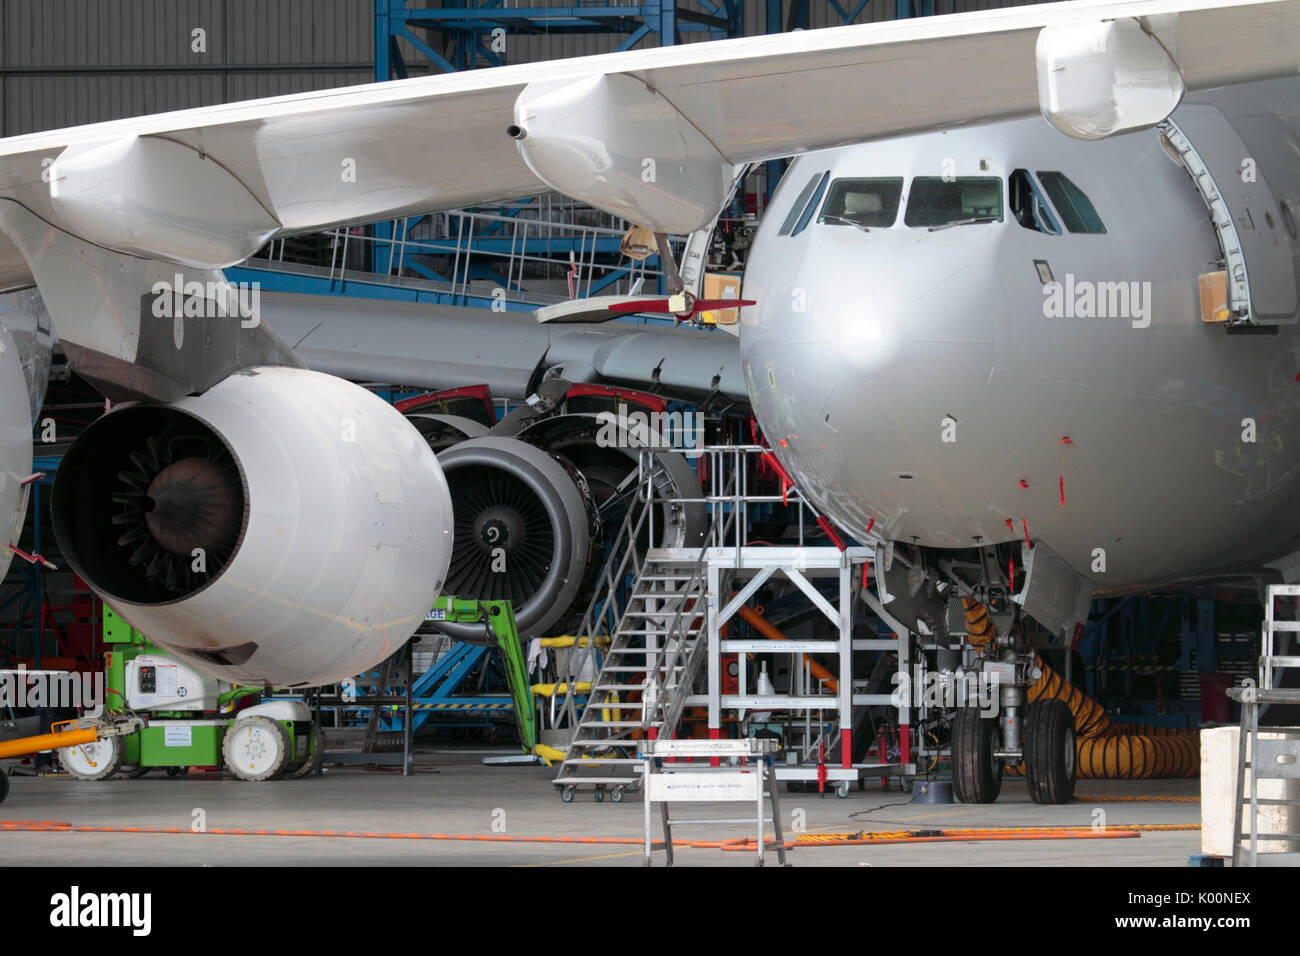 Passenger jet planes undergoing maintenance in a busy aircraft hangar. Aviation engineering as a contributor to economic development and growth of GDP - Stock Image